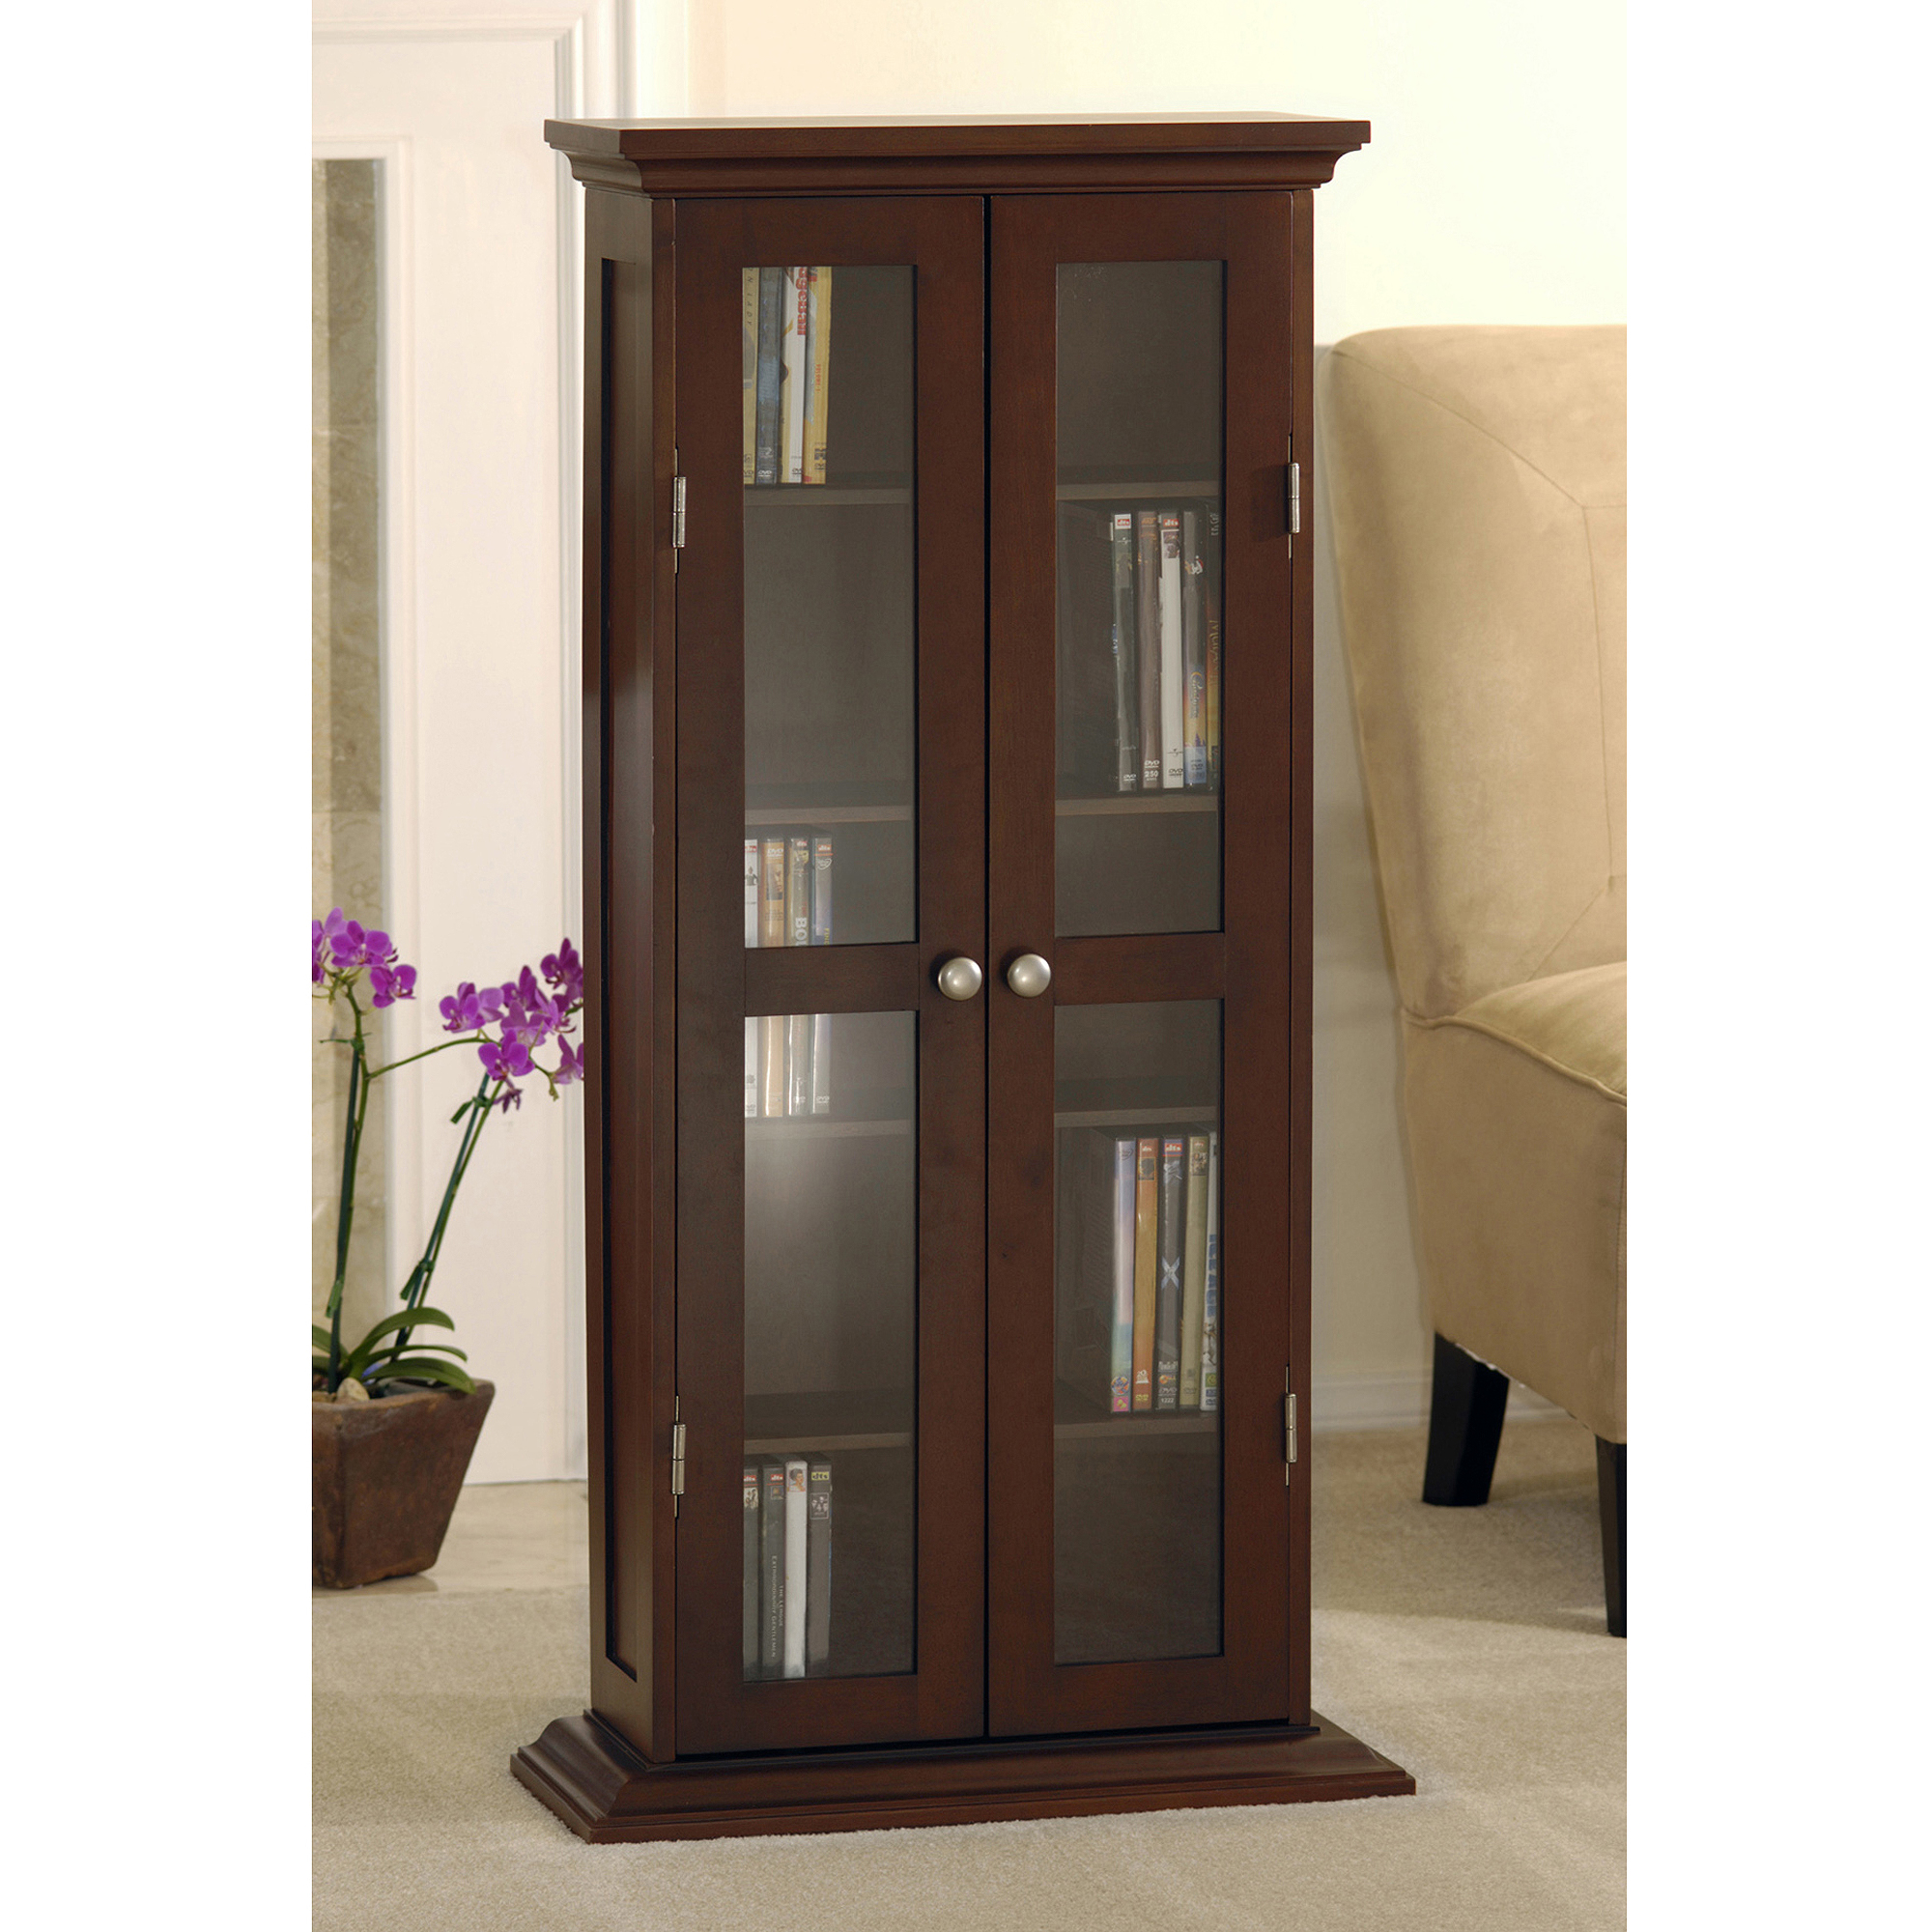 Exceptionnel Wood And Glass DVD / CD Cabinet, Walnut